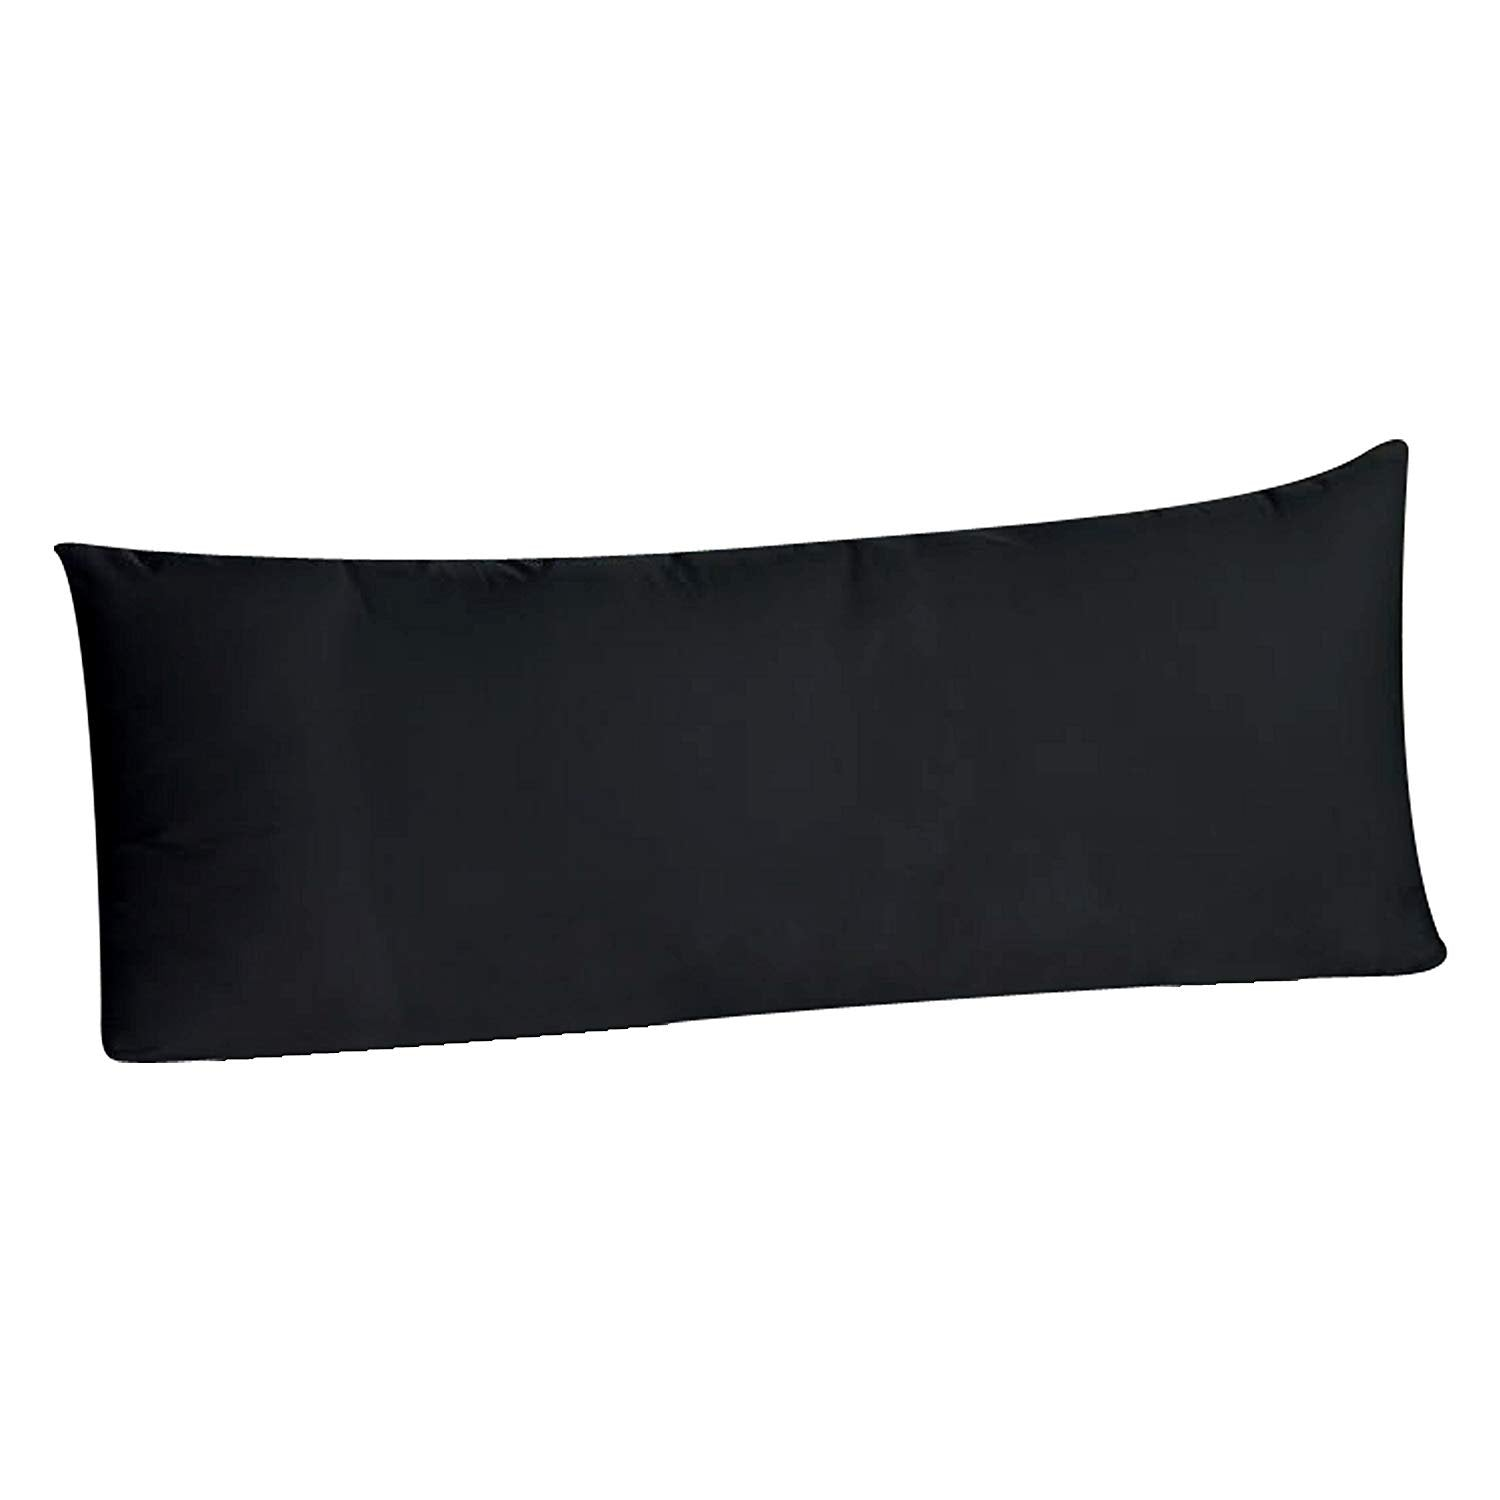 Body Pillowcase Pillow Cover 20 x 54, 100% Brushed Microfiber, Body Pillow Cover, (Envelope Closure, Midnight Blue)